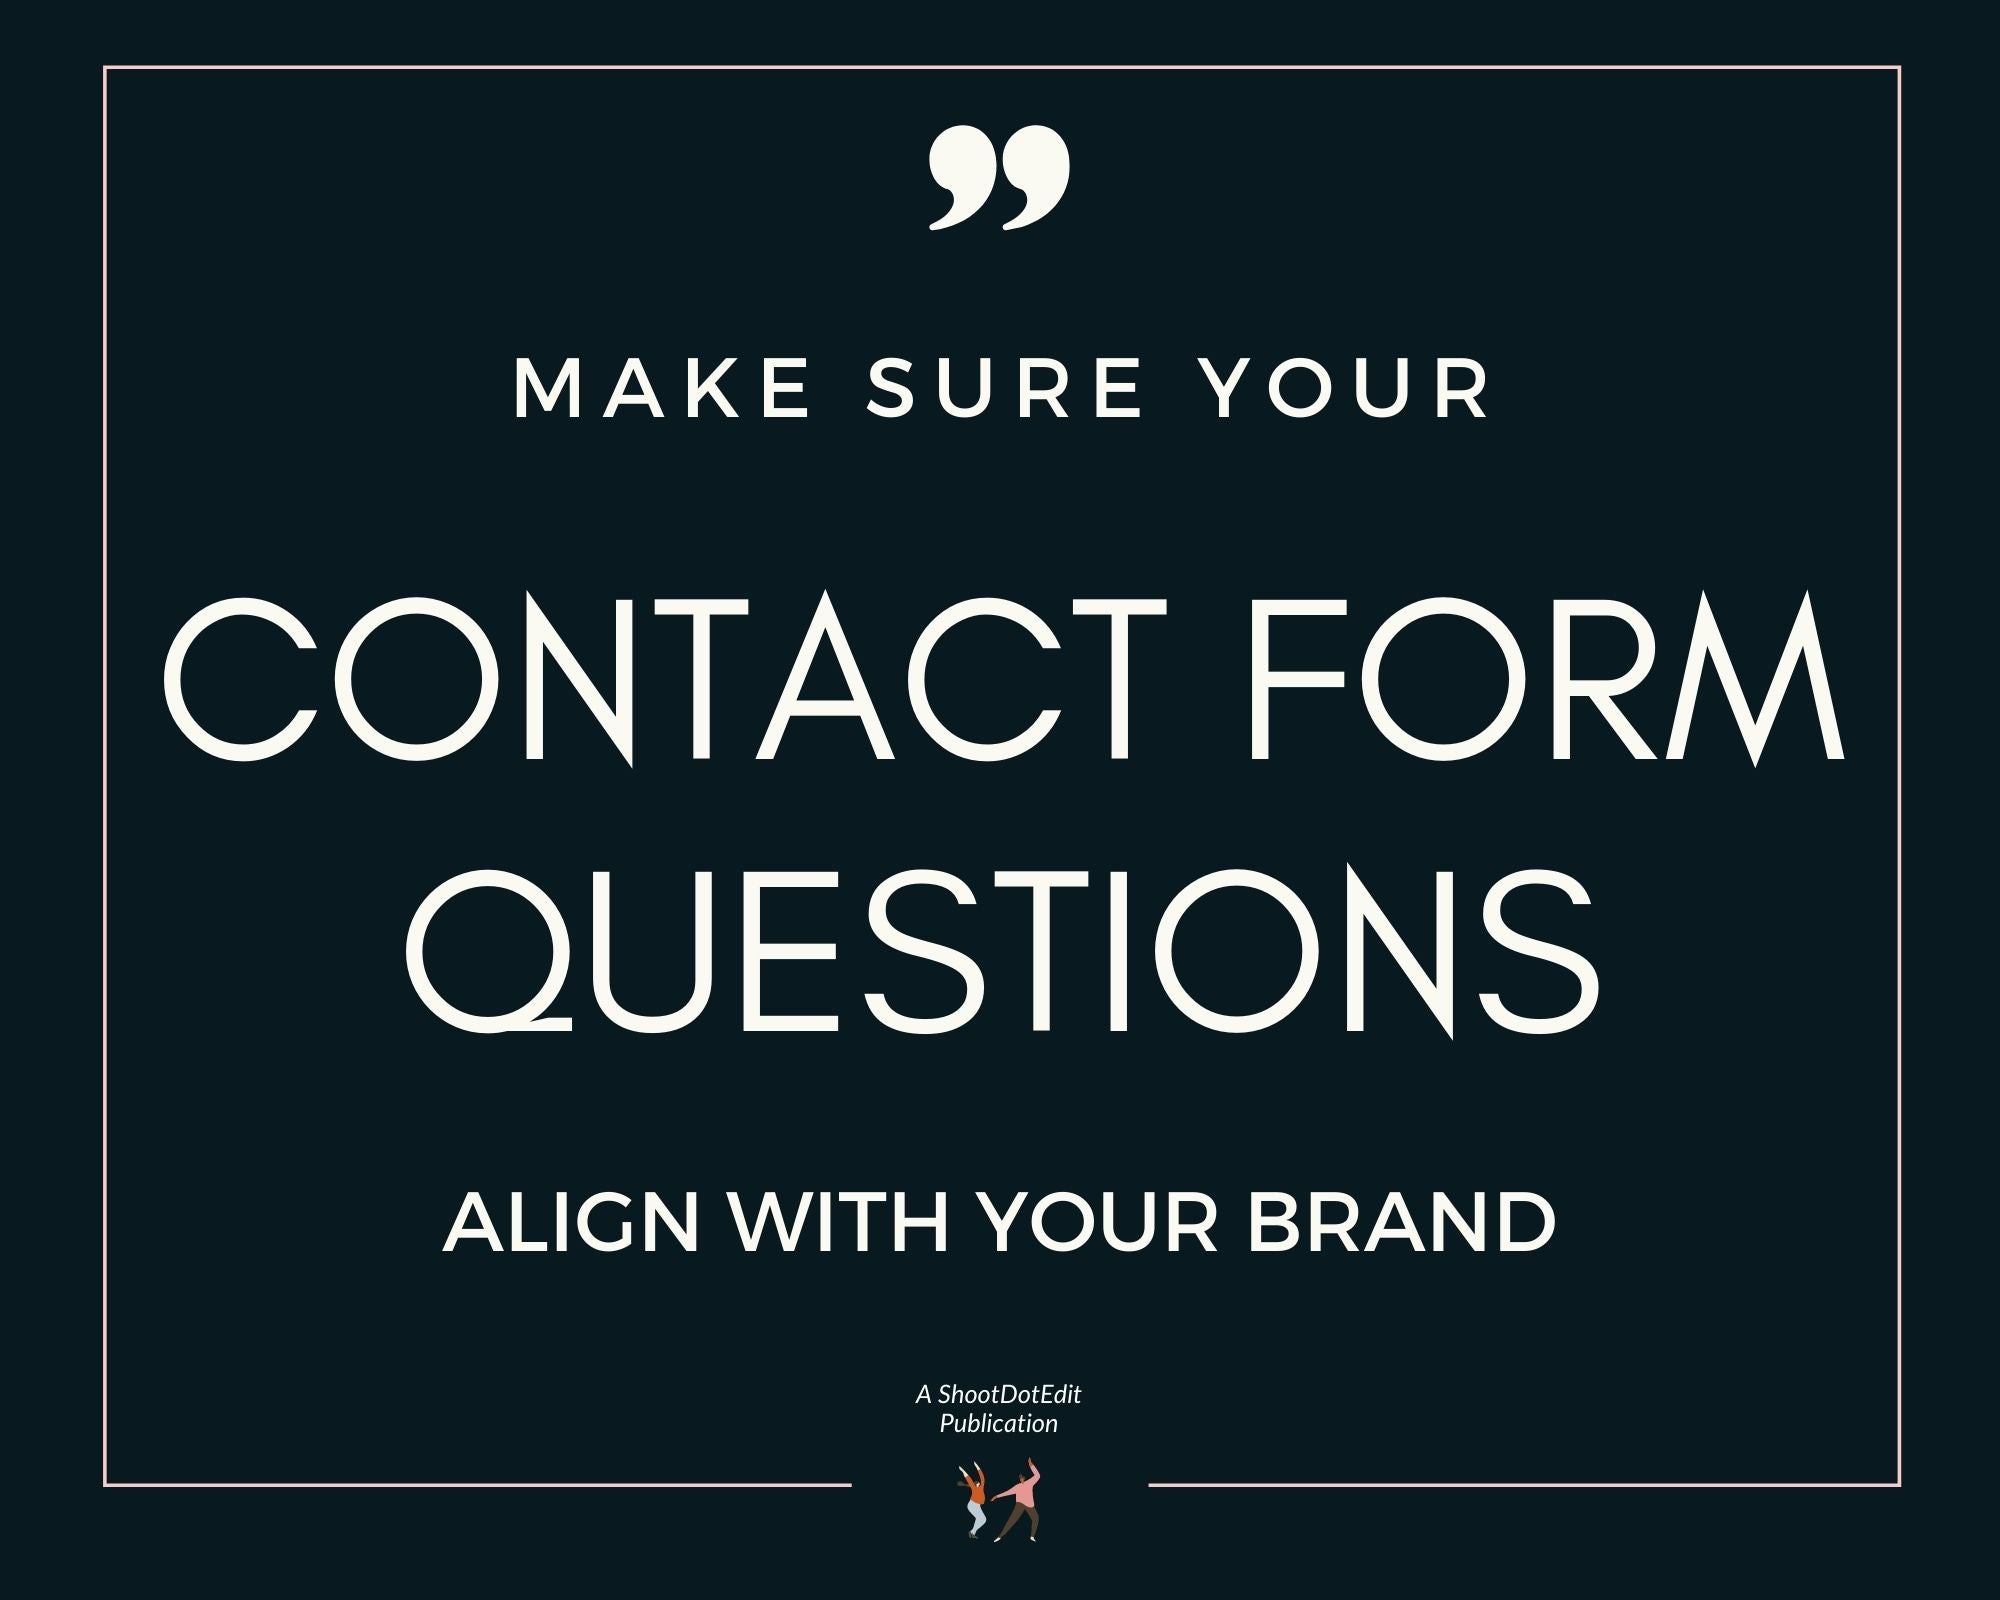 Infographic stating make sure your contact form questions align with your brand